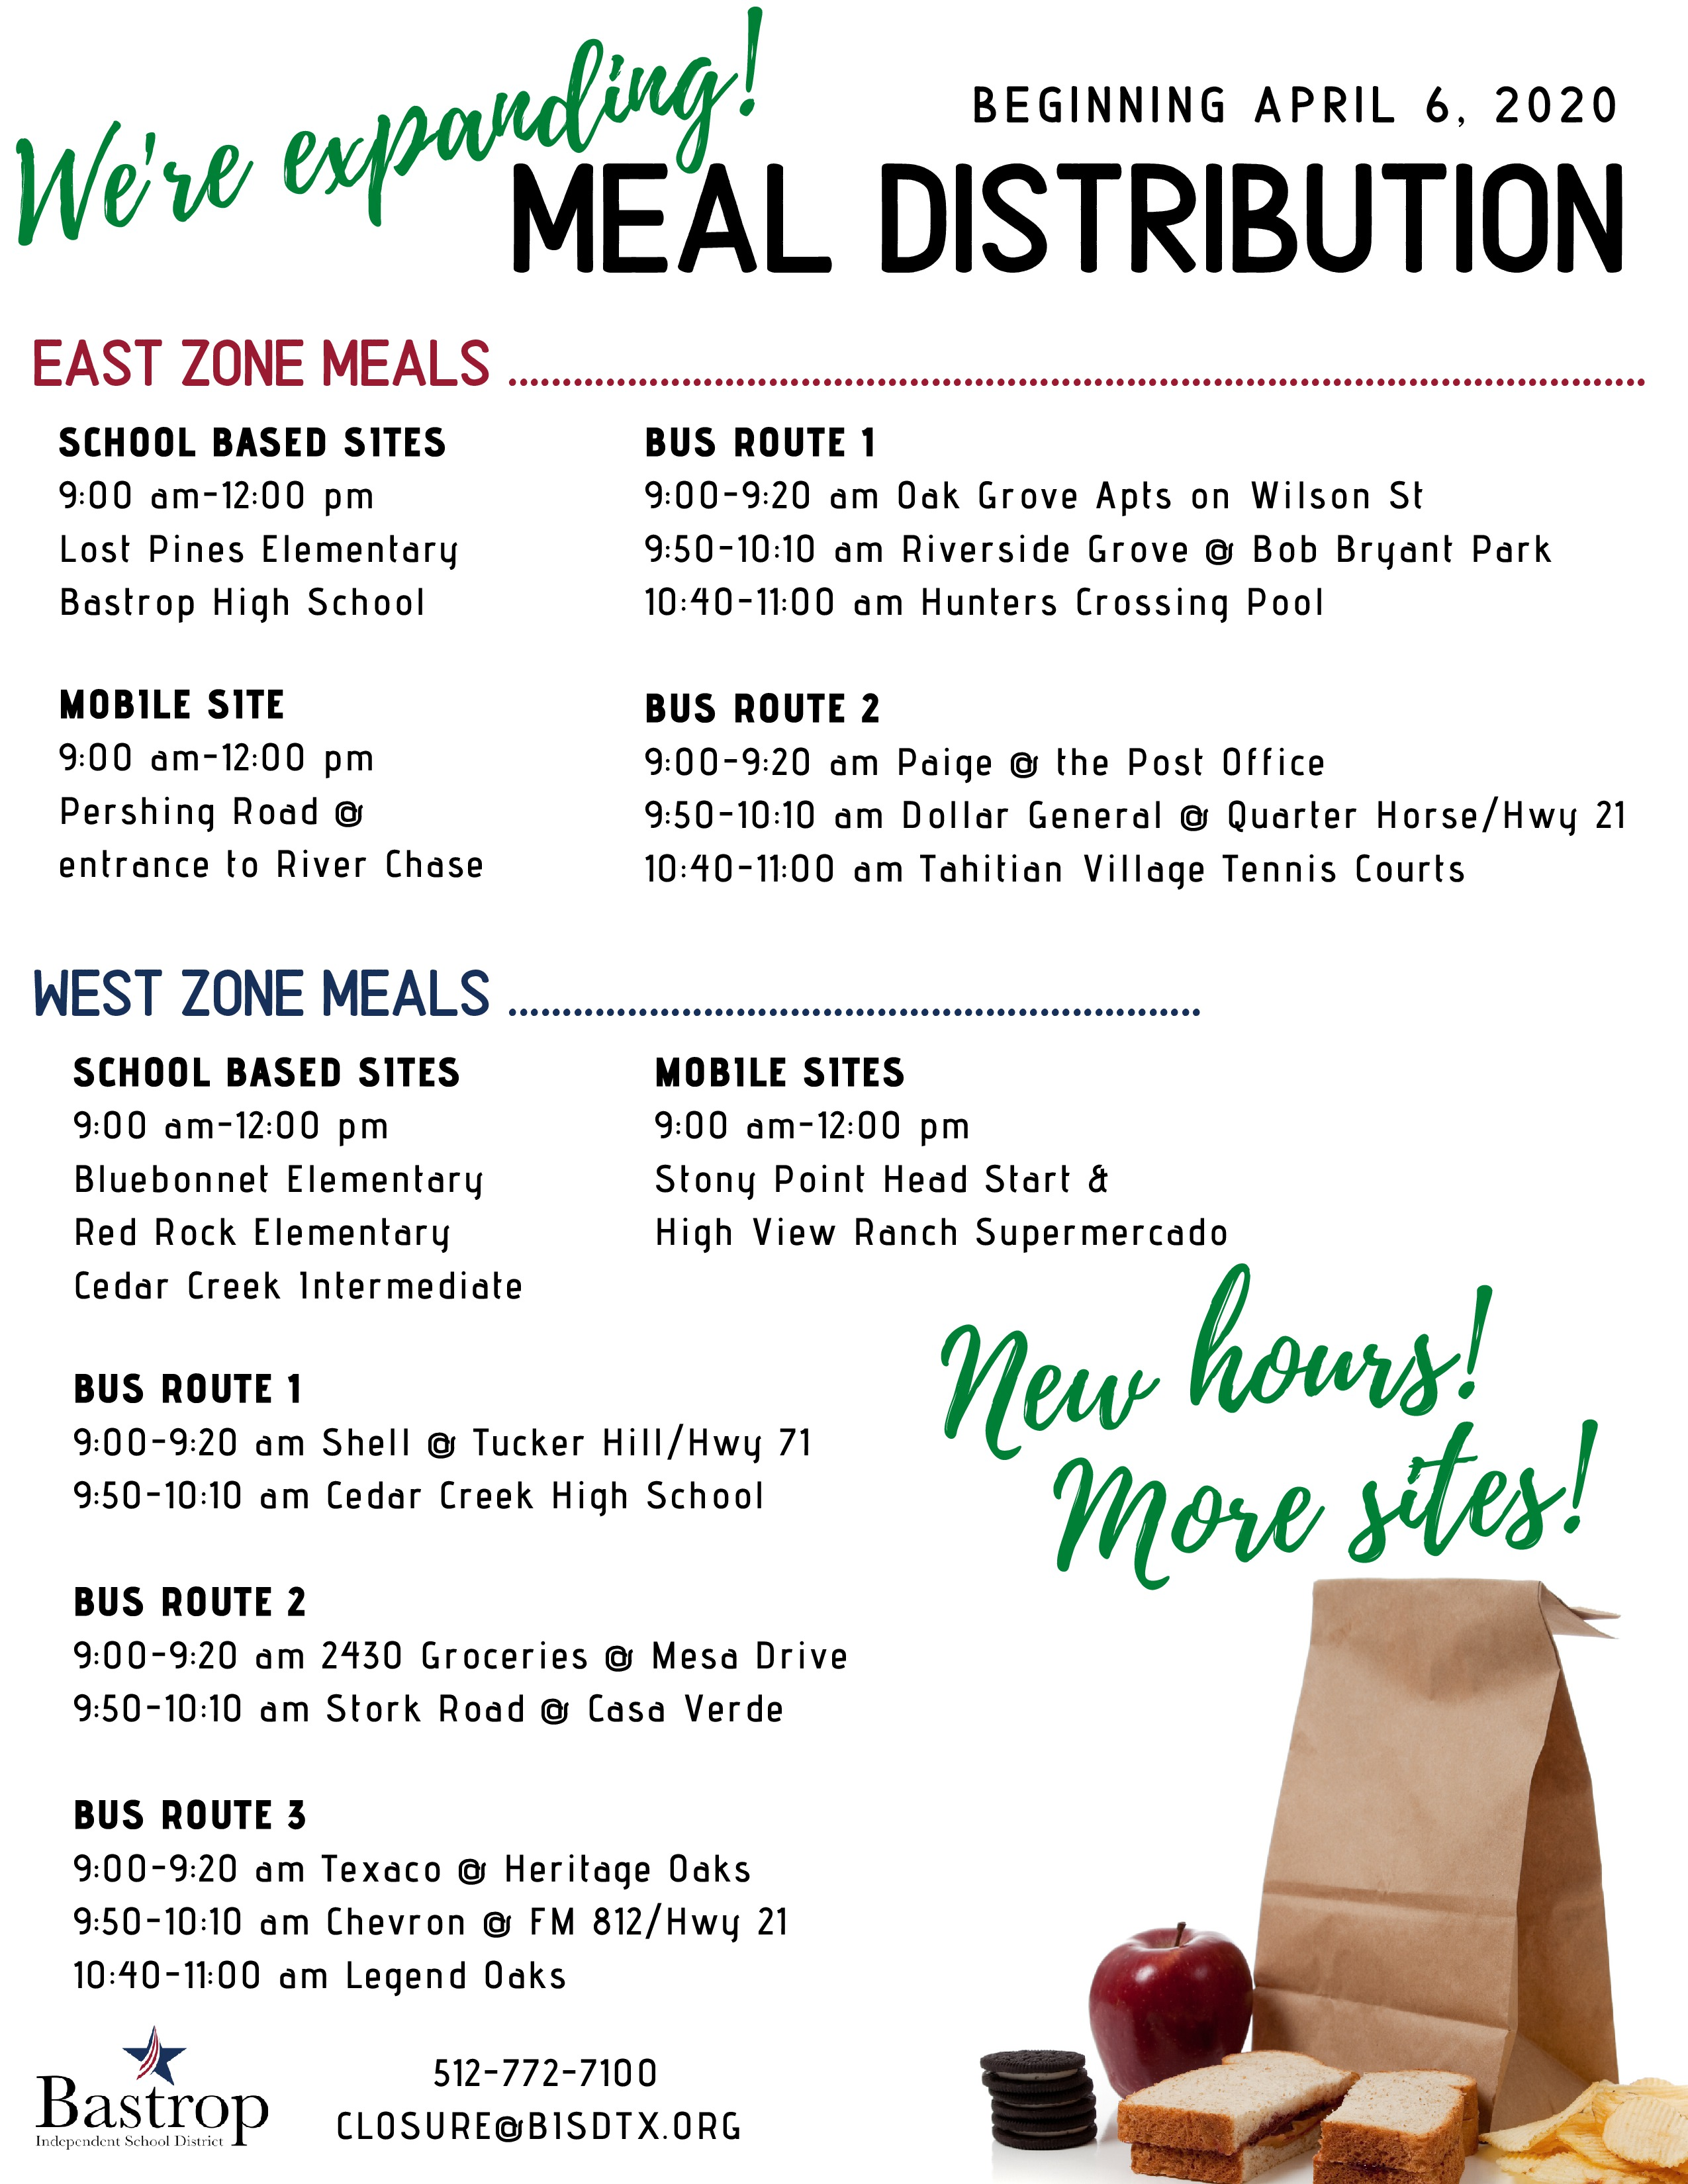 FLYER Meal Distribution Plan-page-0 English.jpg